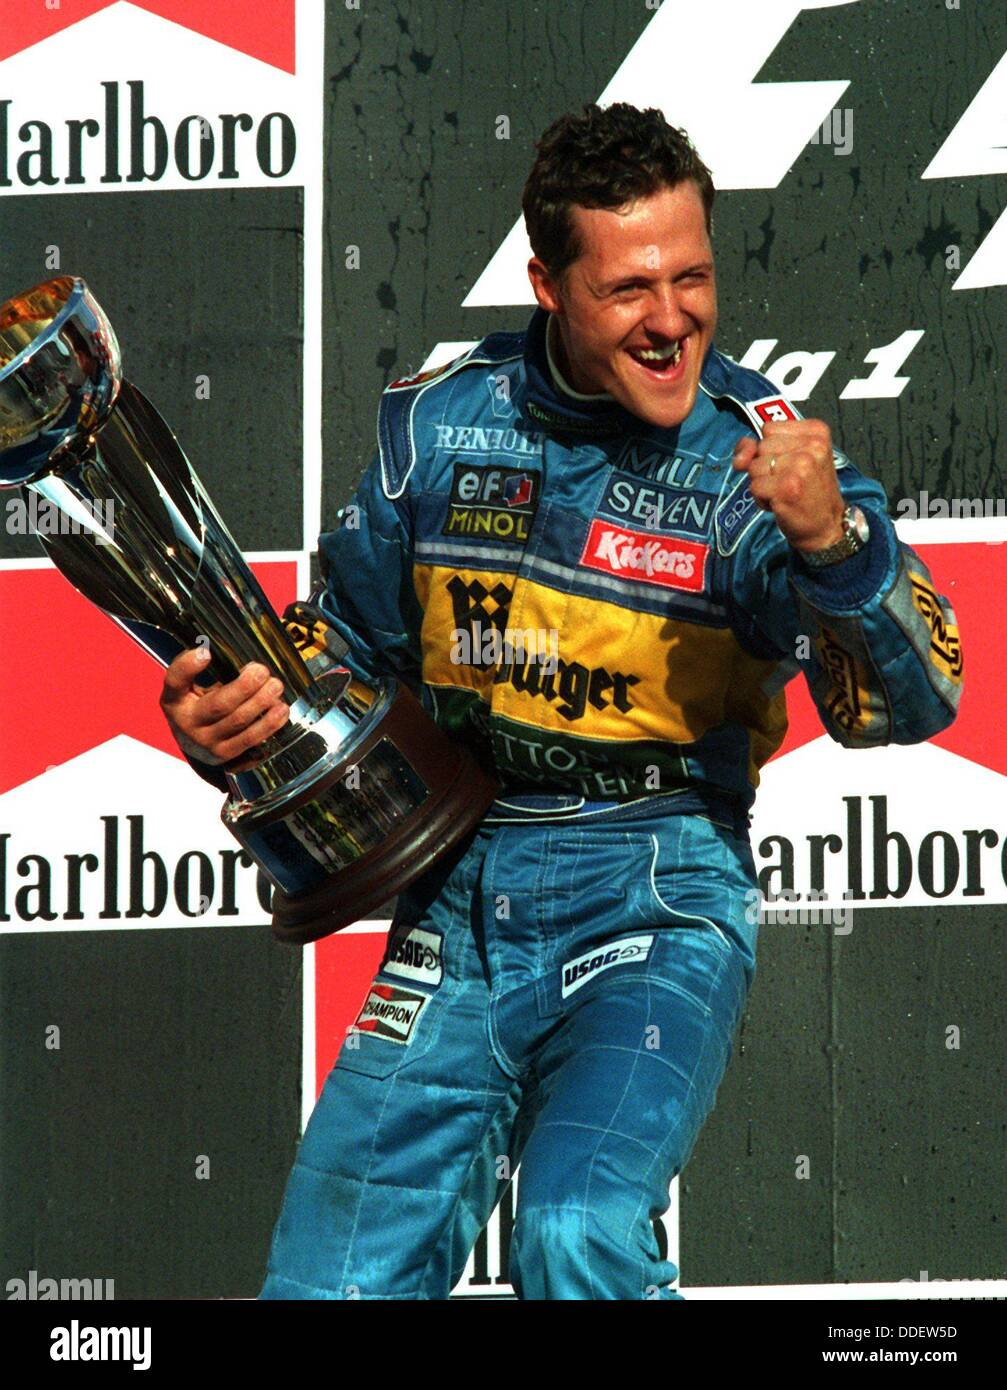 Michael Schumacher is world champion and holds the cup in his hand on the 22nd of October in 1995. He will end his - Stock Image